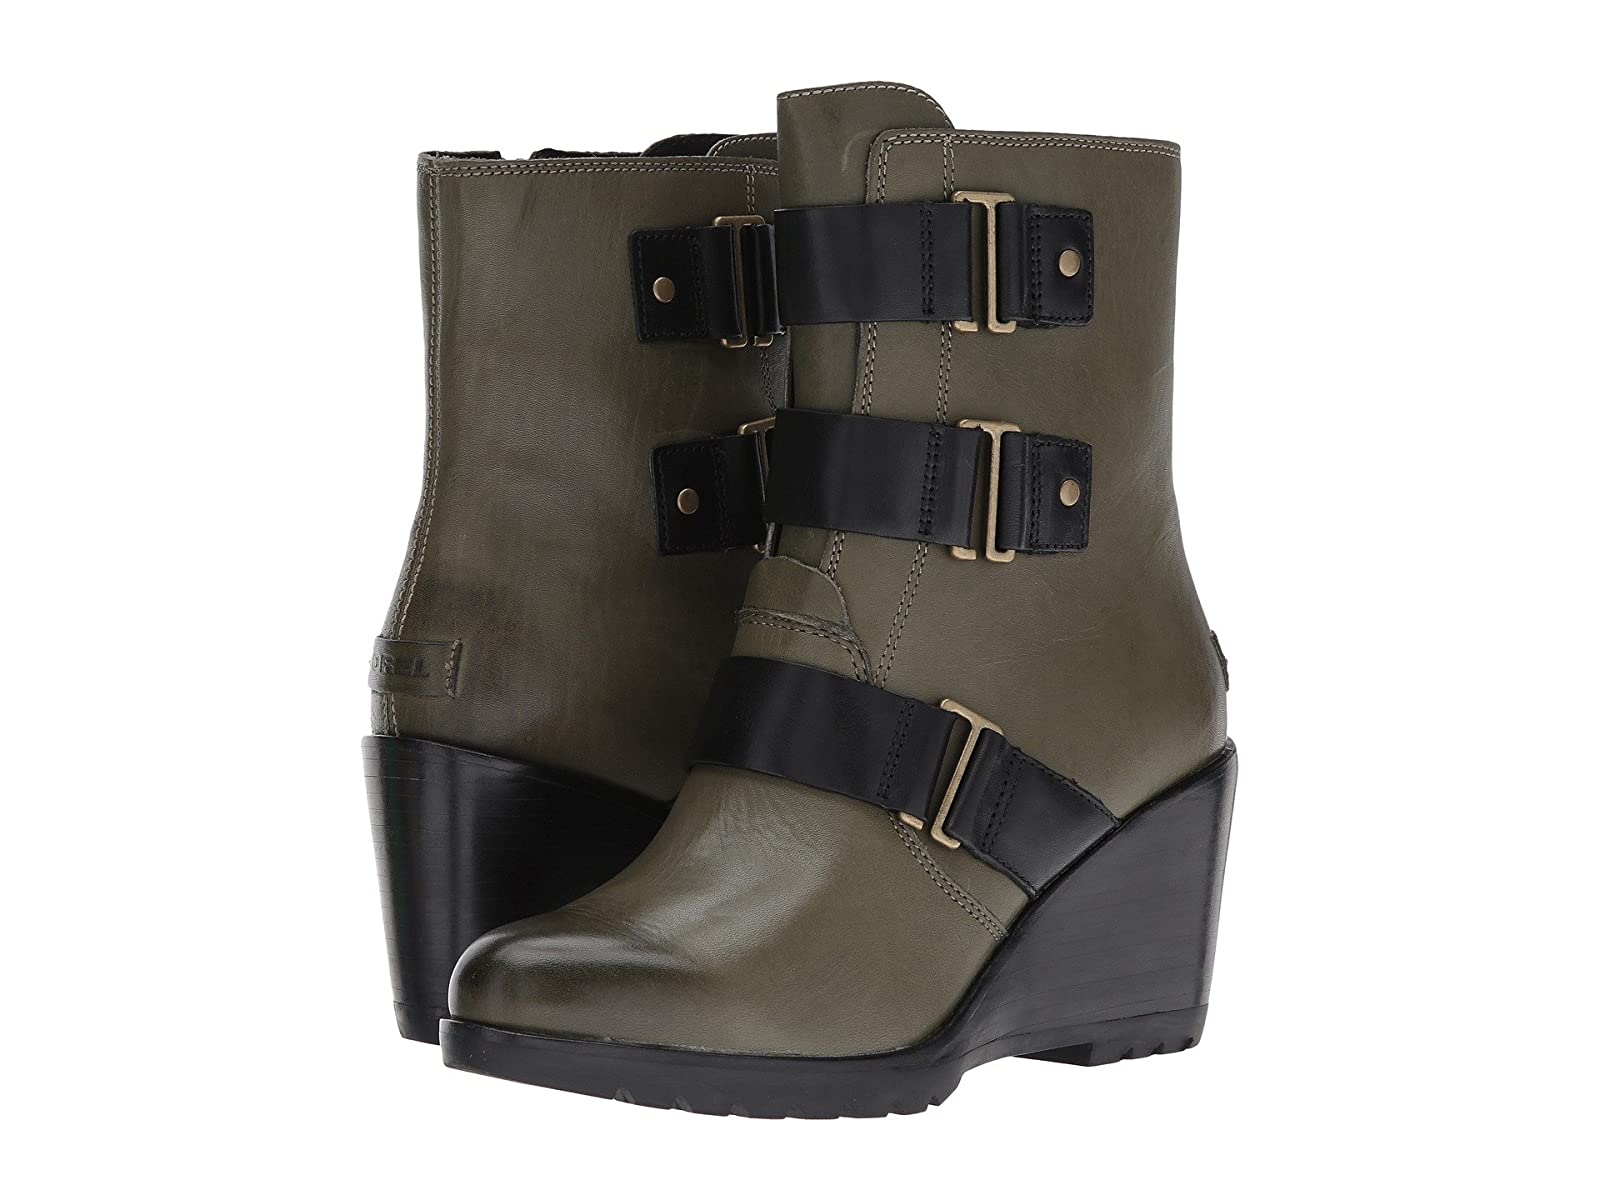 SOREL After Hours BootieCheap and distinctive eye-catching shoes